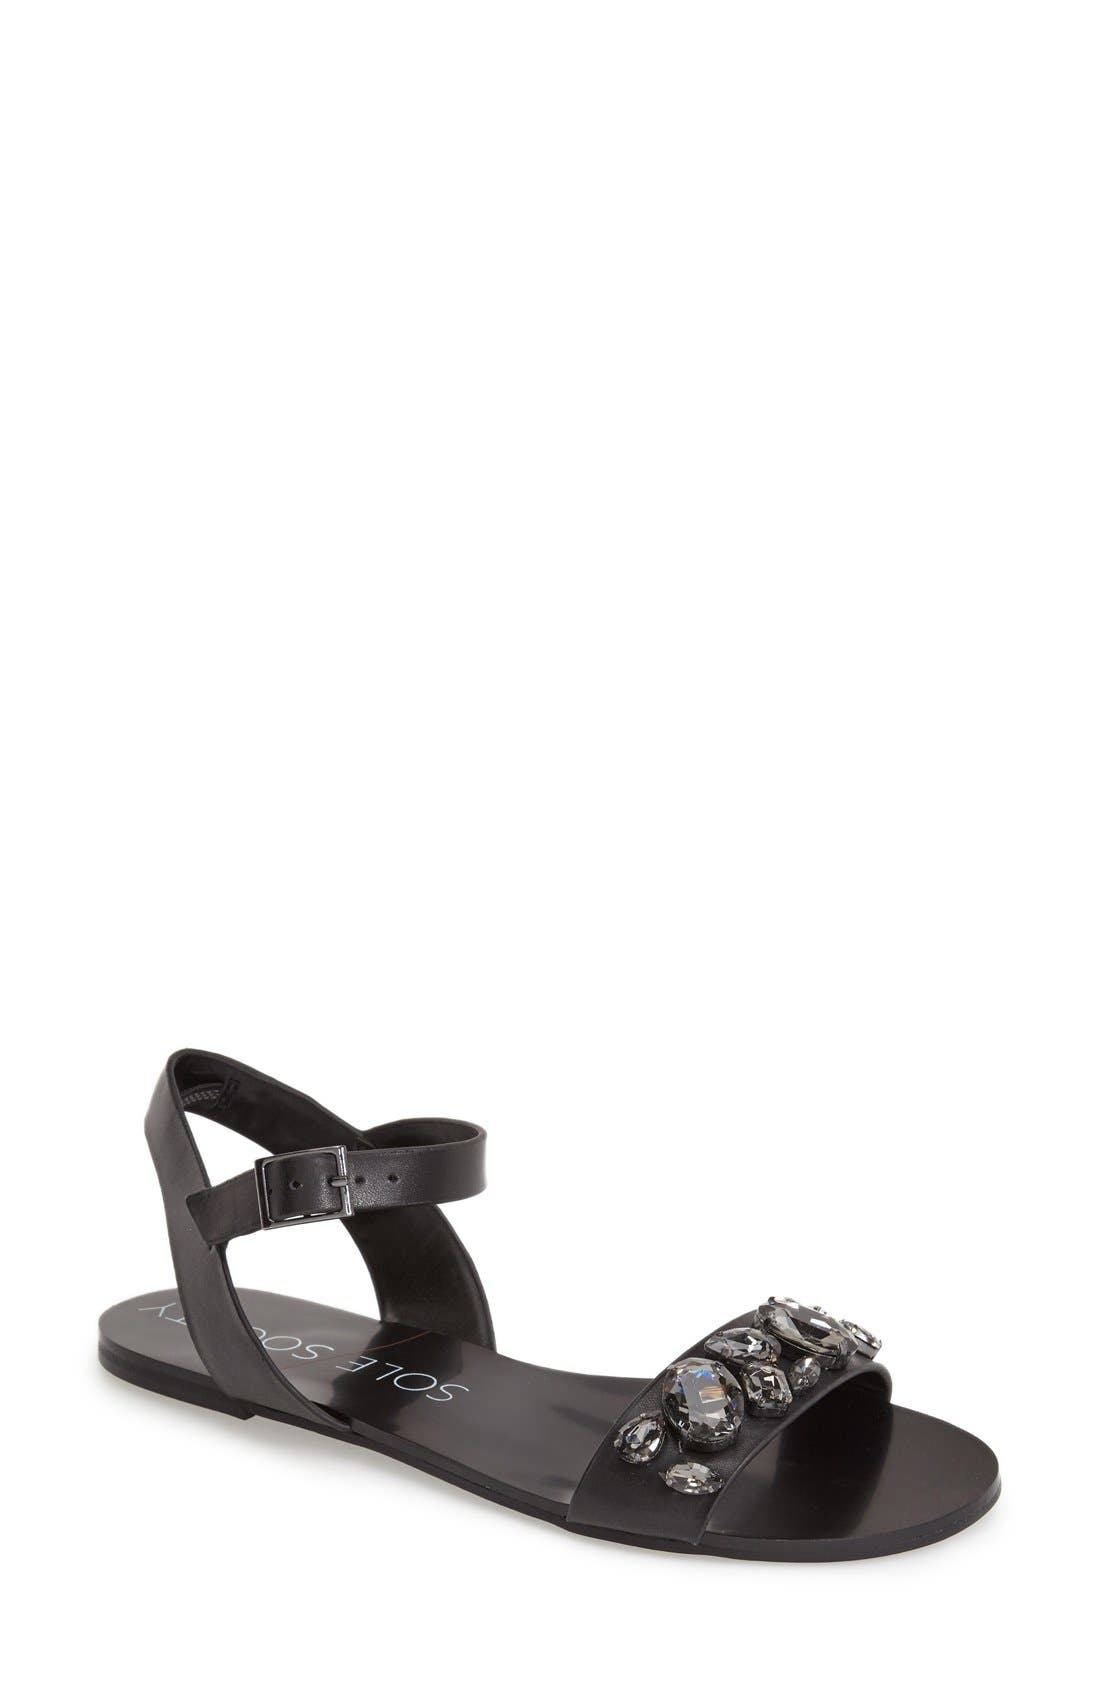 Main Image - Sole Society 'Gemma' Crystal Ankle Strap Sandal (Women)